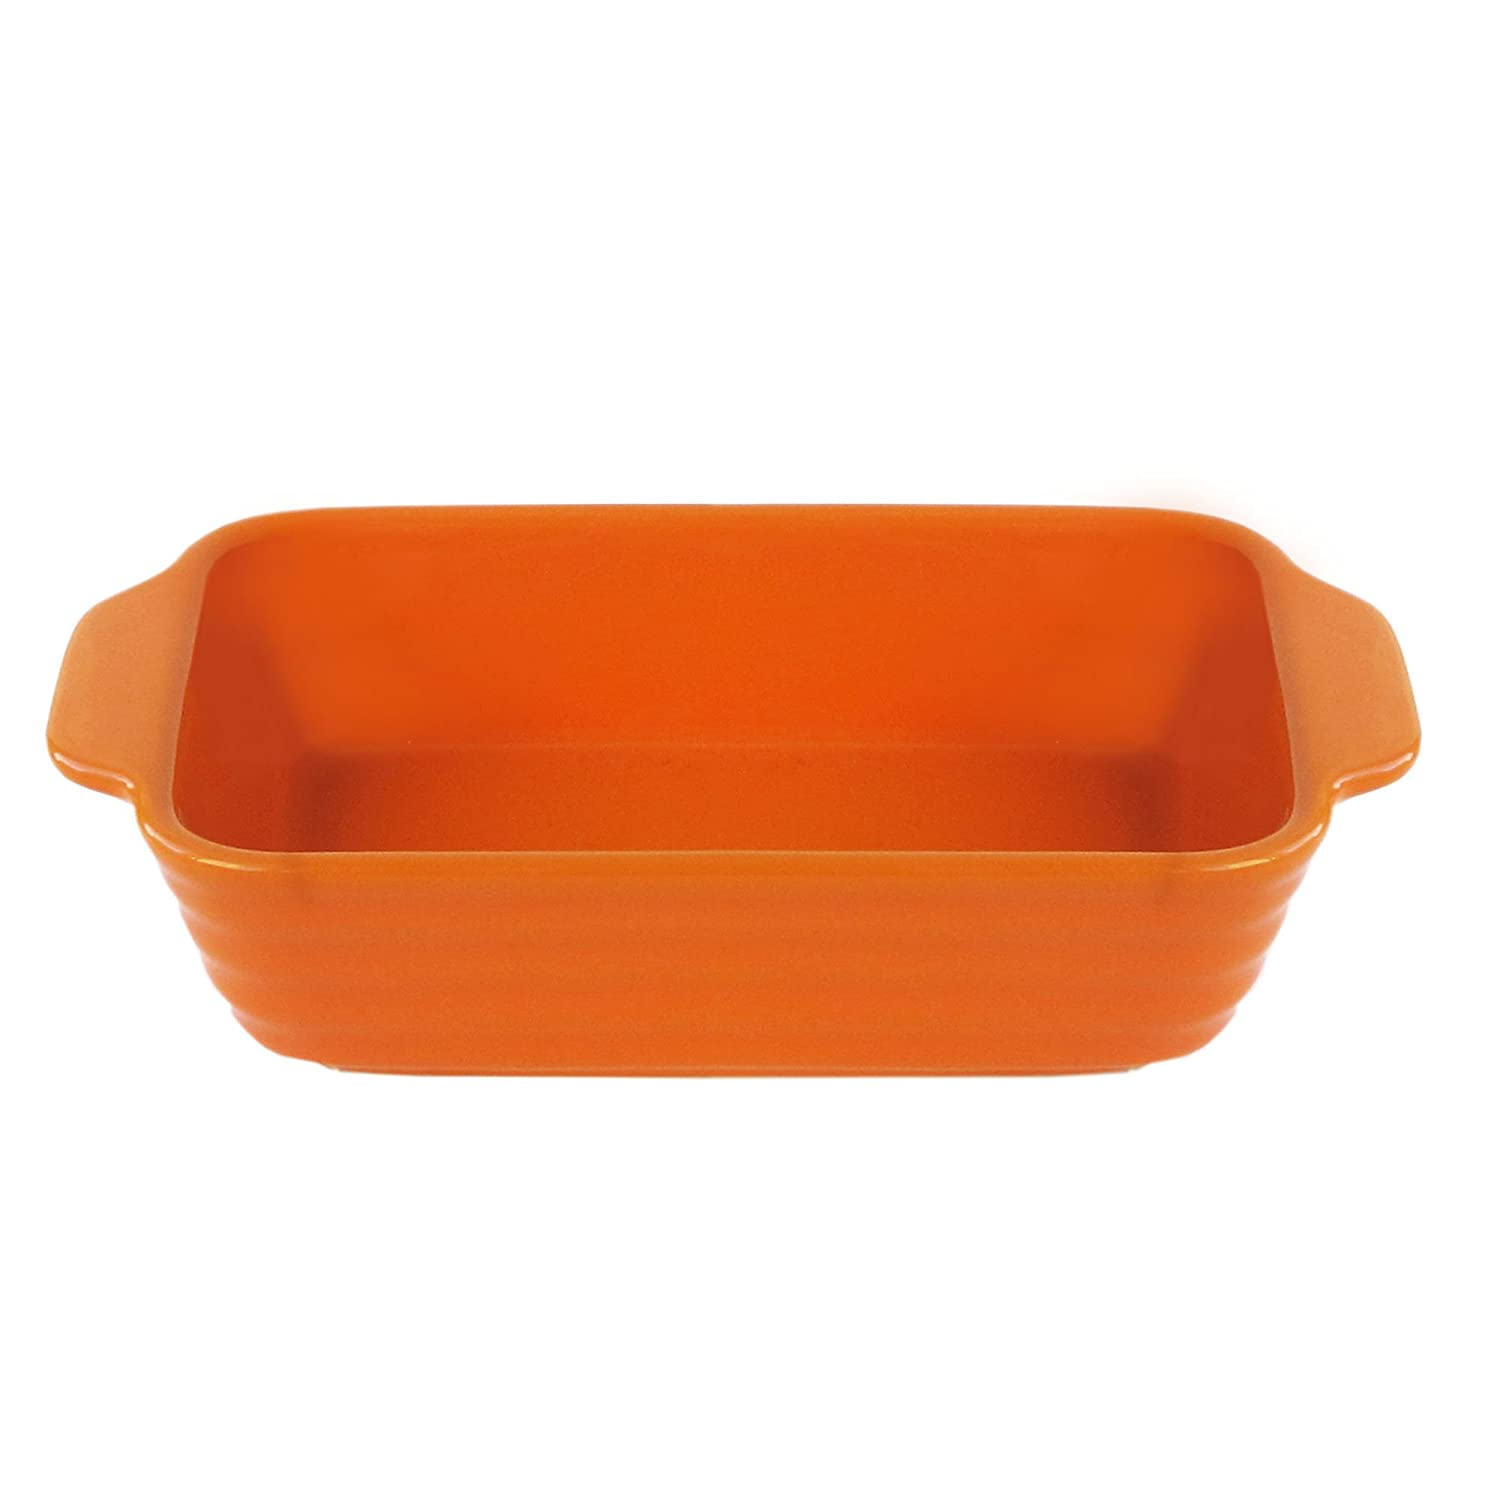 American Atelier Bistro Rectangle Bake and Serve Bowl, Orange 6235-BKS-R